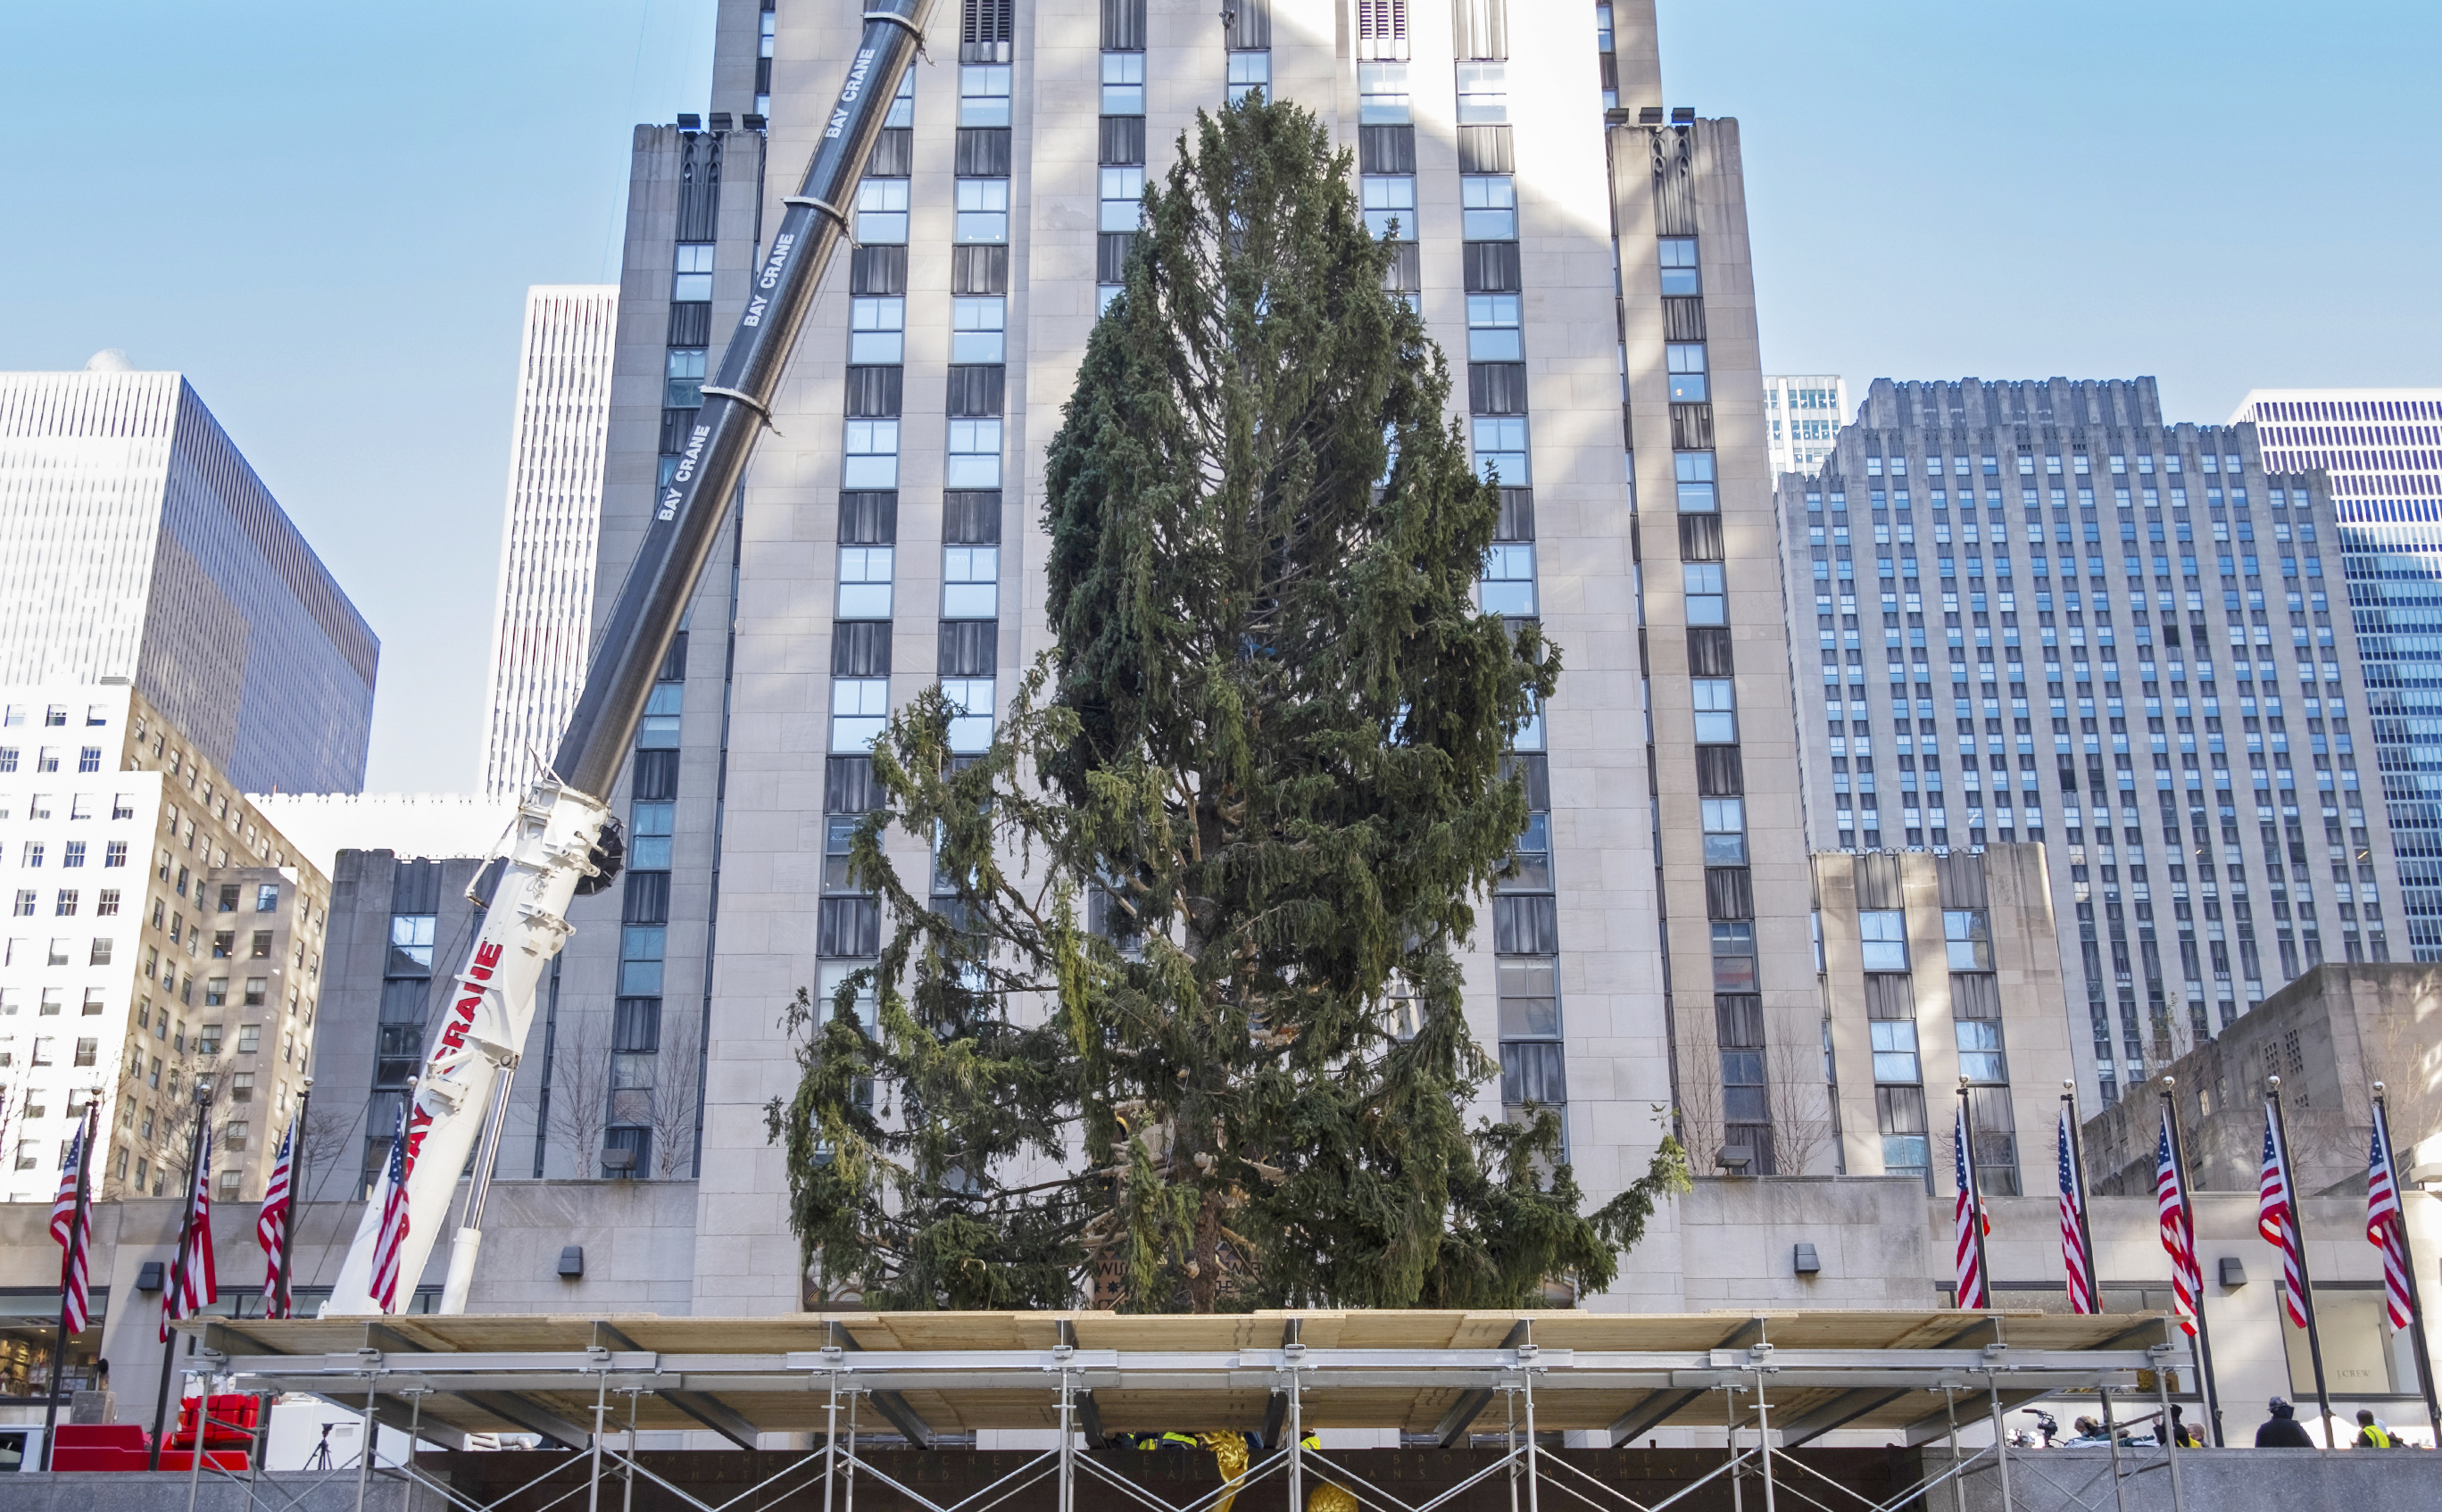 Rockefeller Christmas Tree 2021 Time Rockefeller Christmas Tree From Cny Gets Mocked And Compared To Charlie Brown Syracuse Com